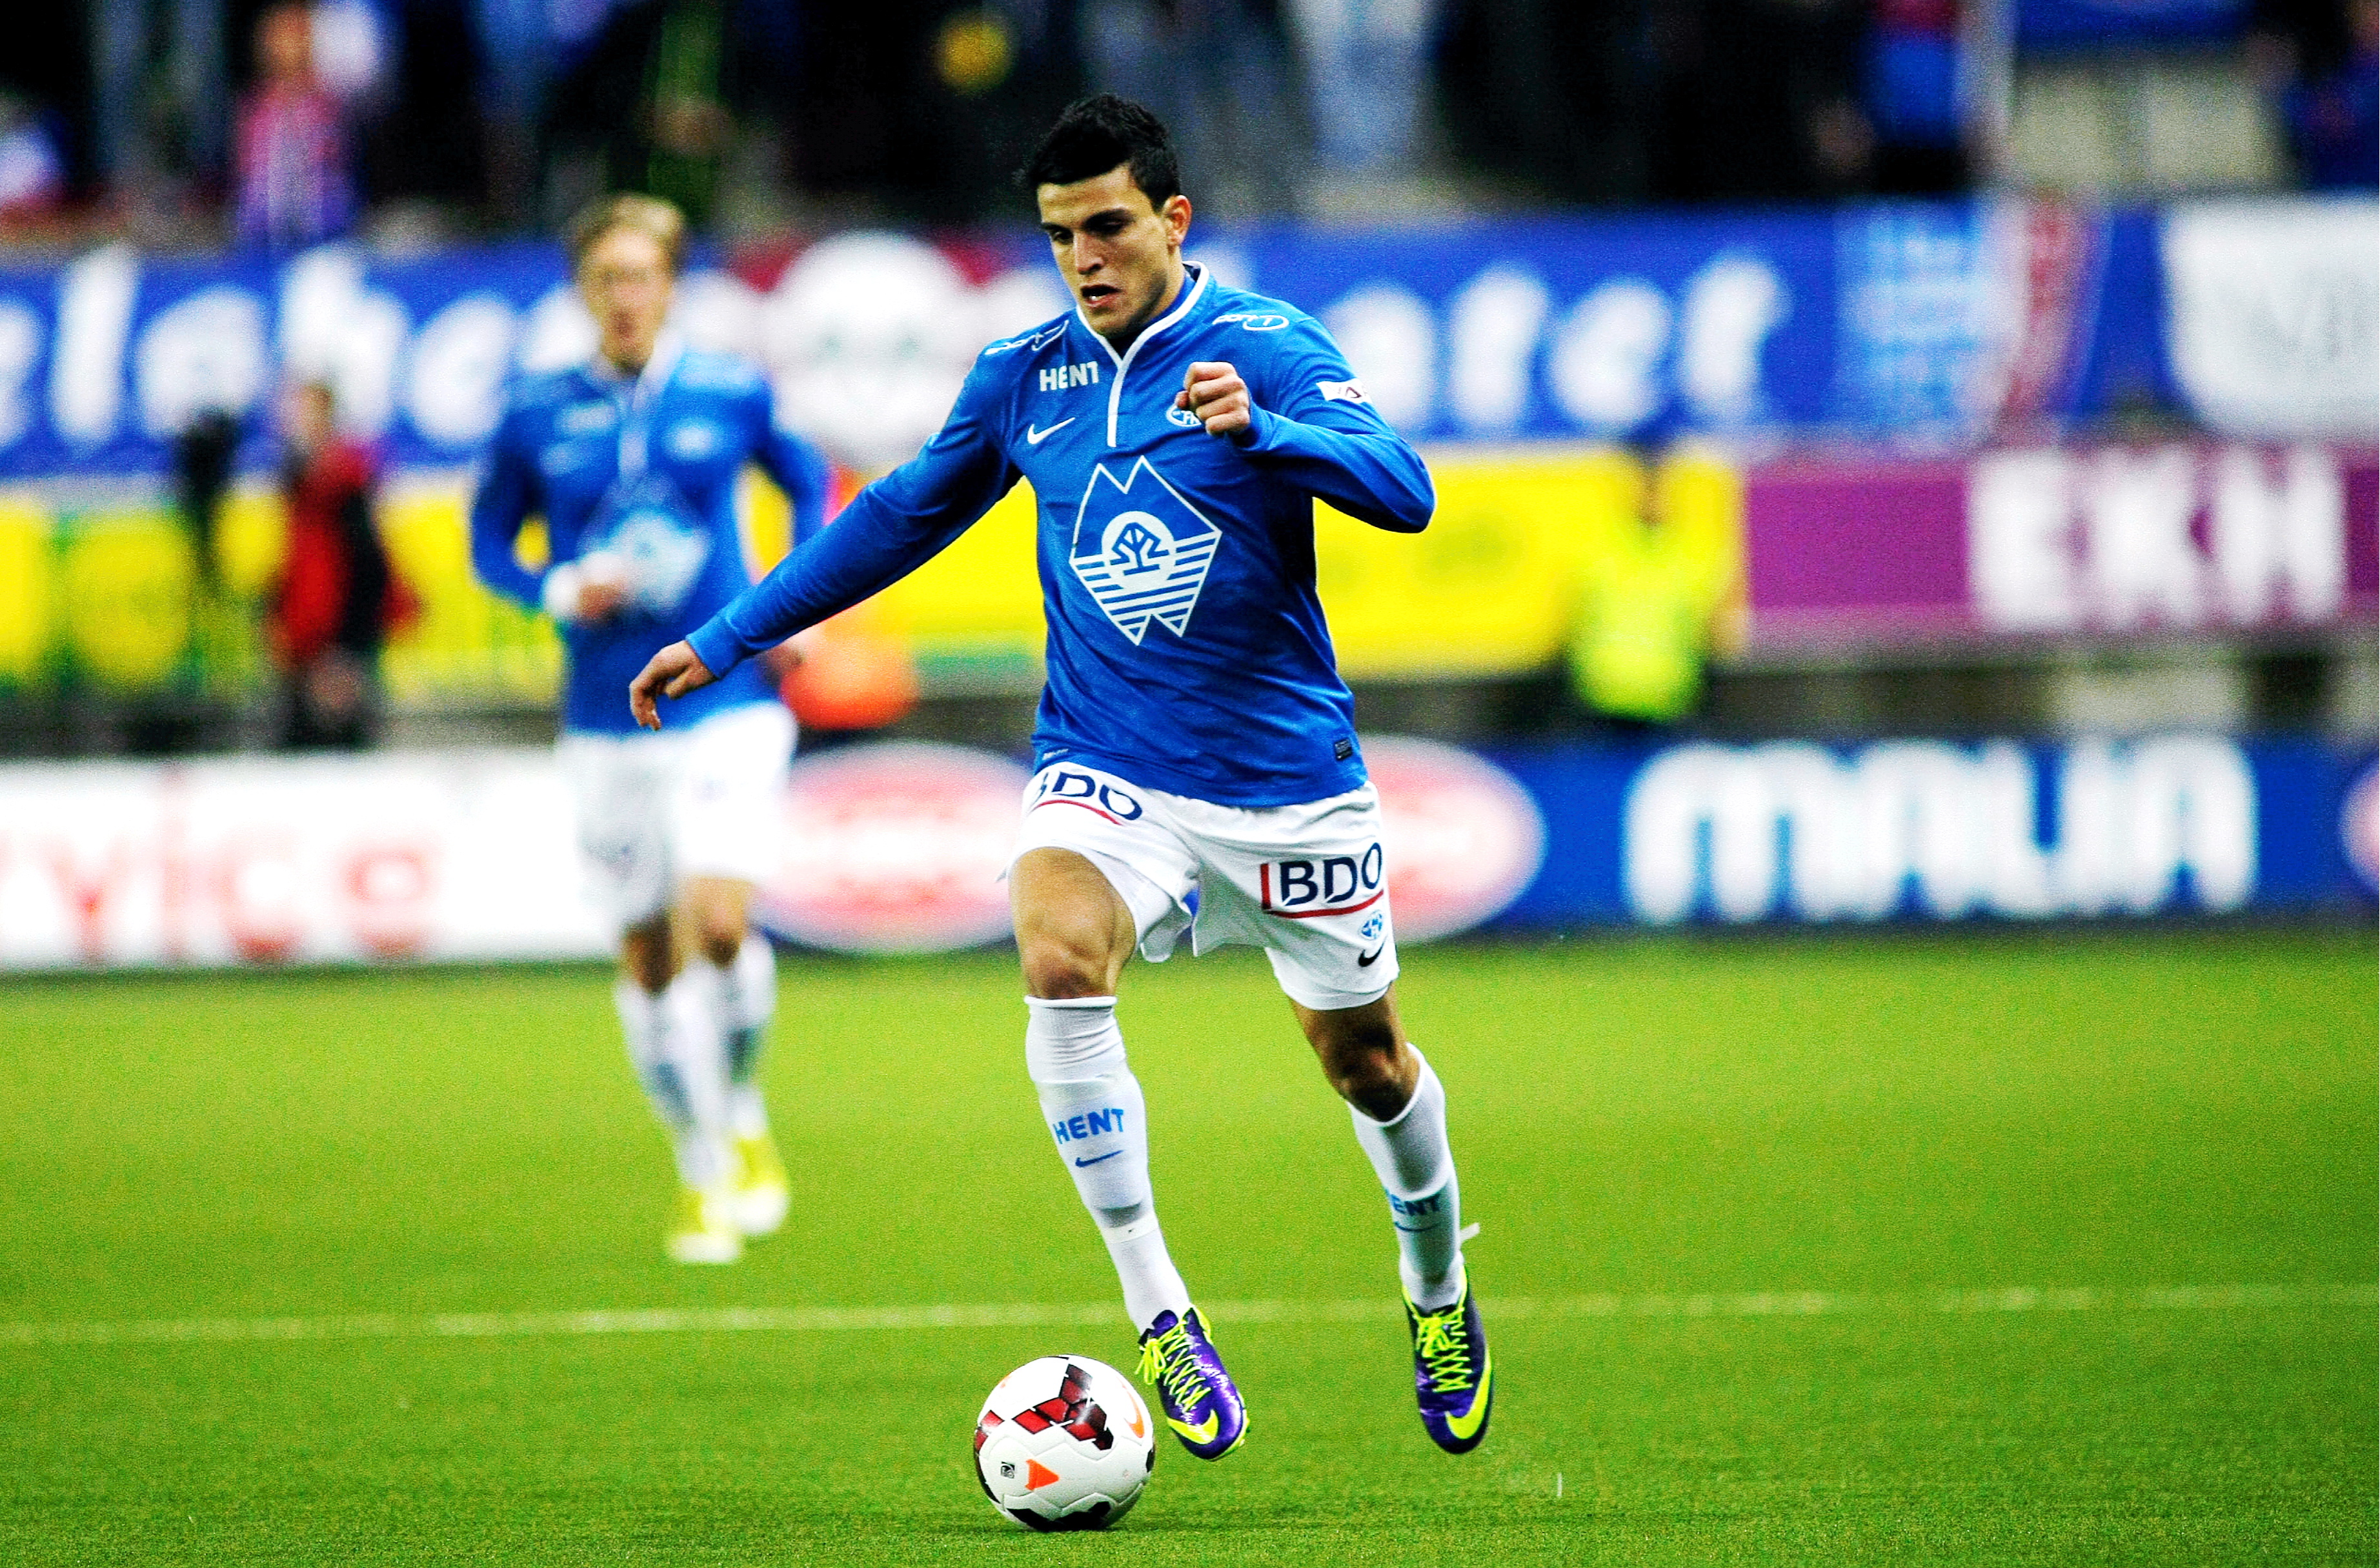 MOLDE_Mohamed-Elyounoussi1